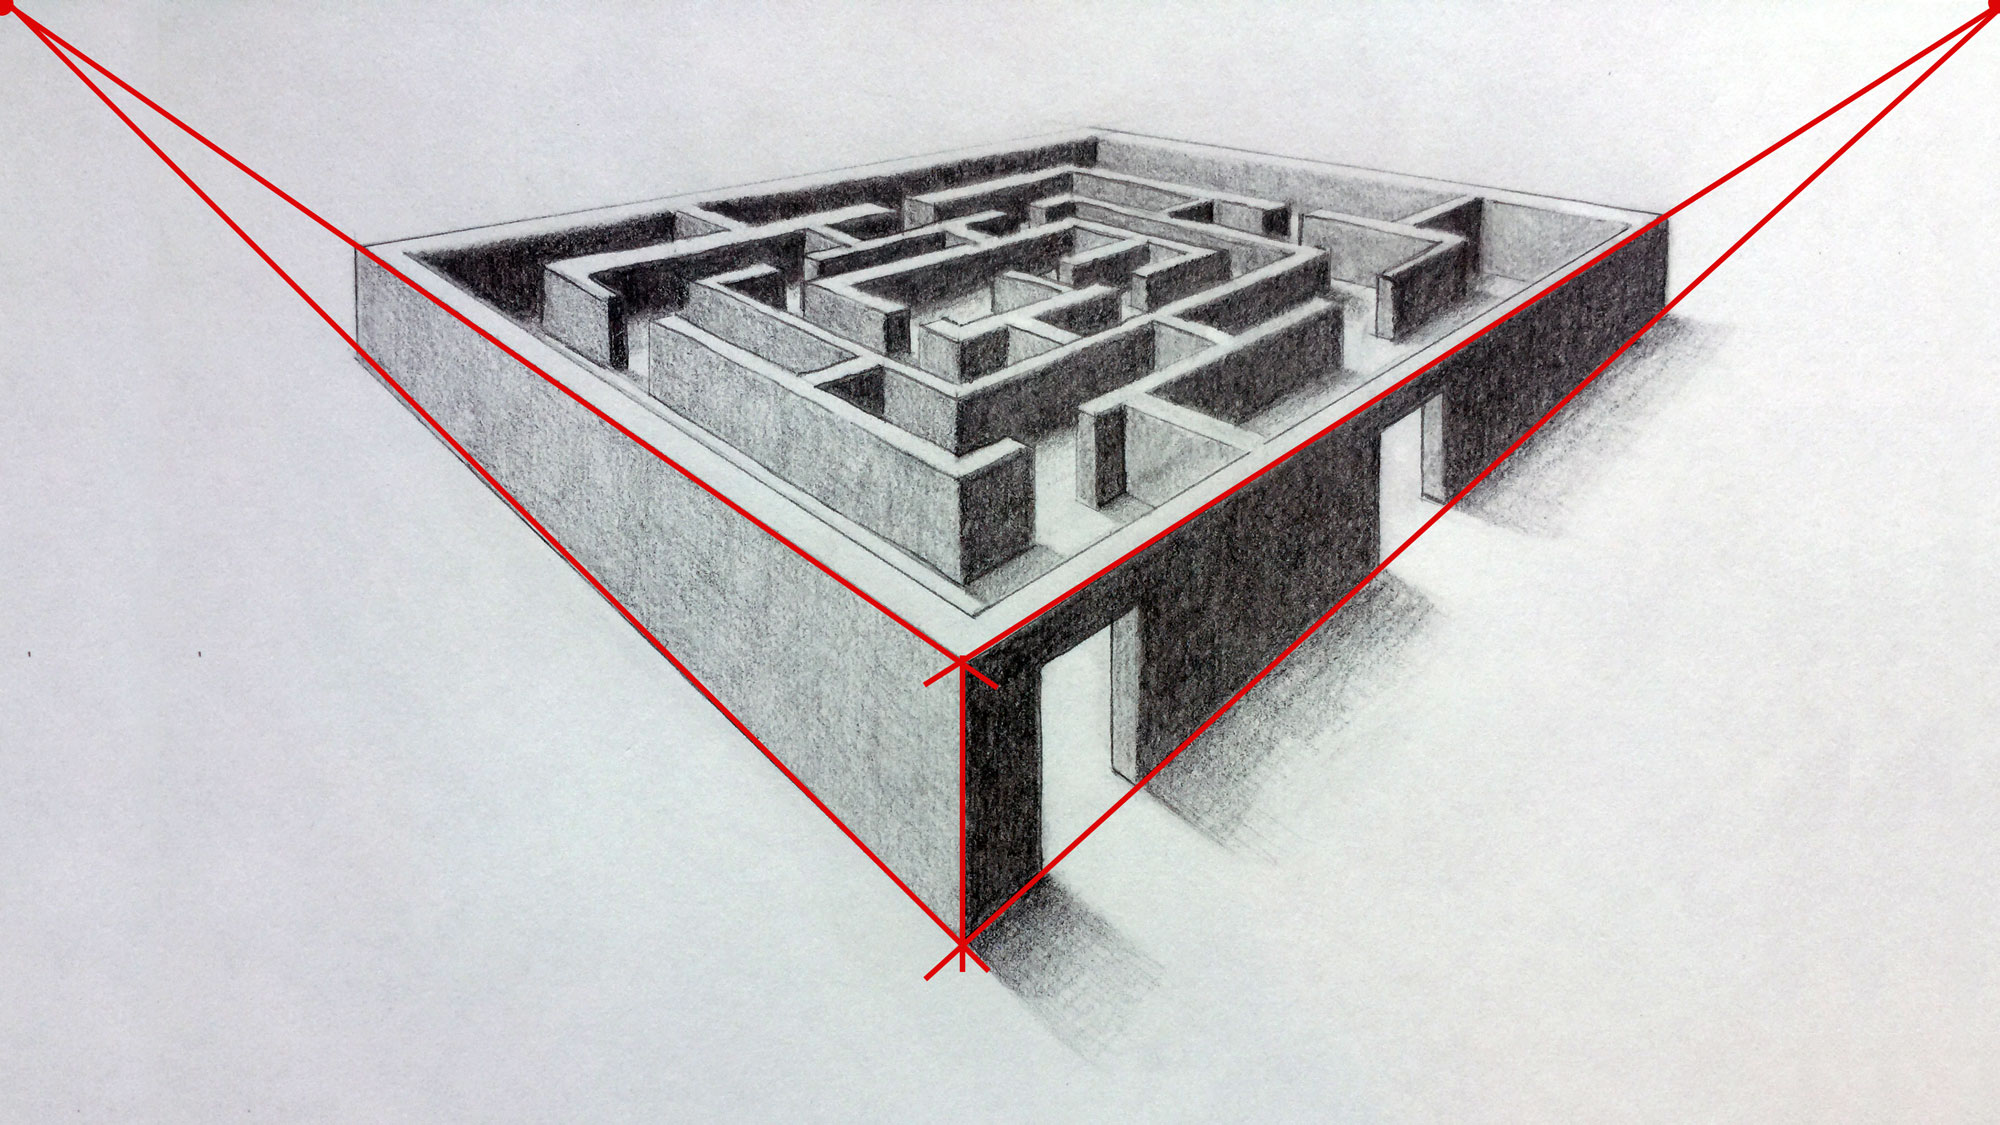 Drawn maze pencil Point perspective 3D Perspective of